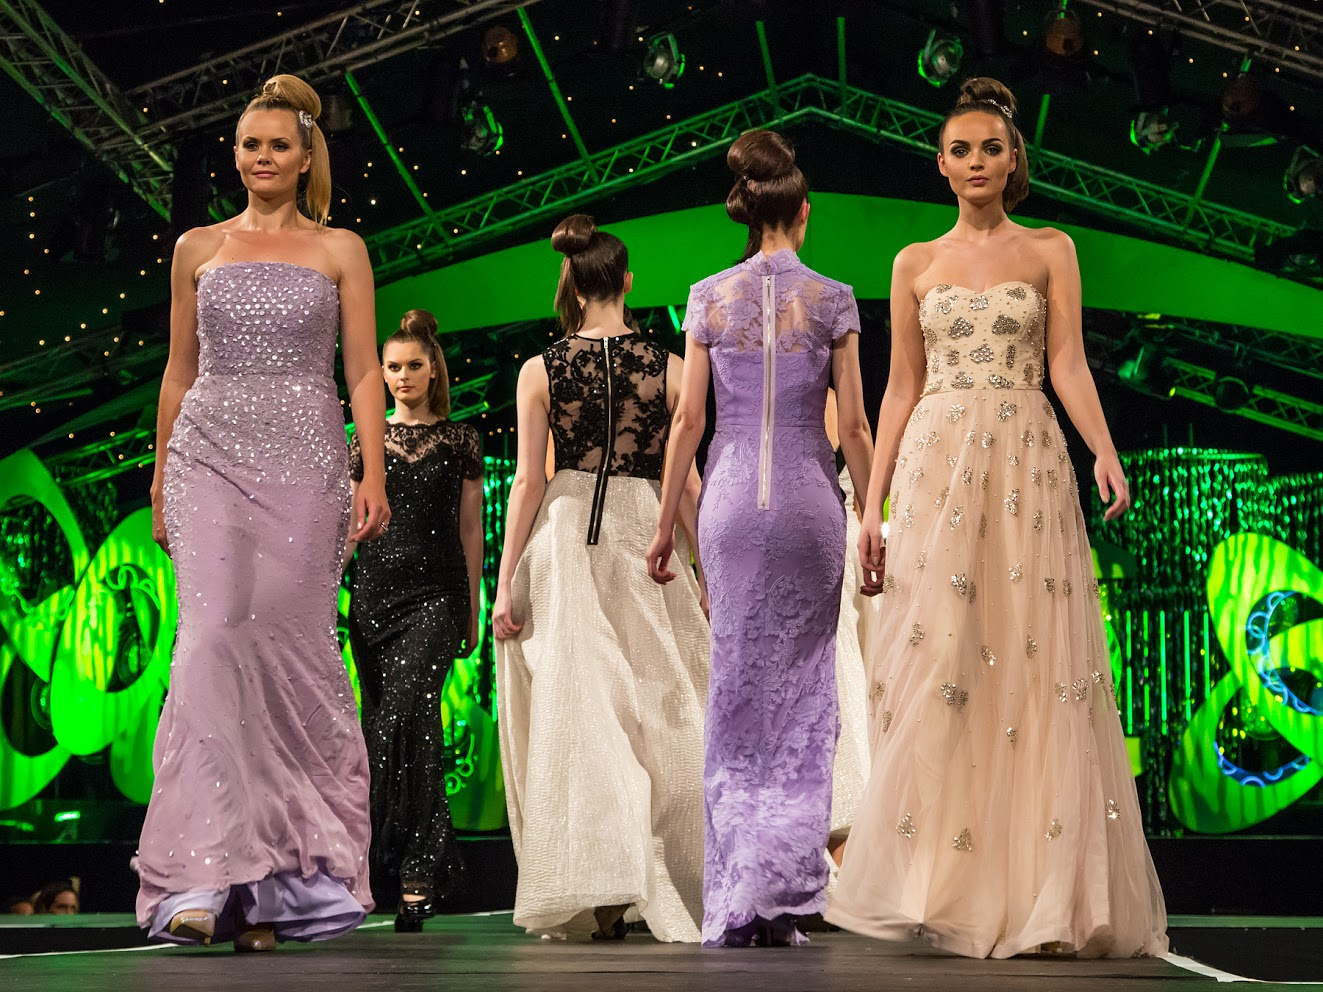 dolf_patijn_rose_of_tralee_fashion_16082015_0620